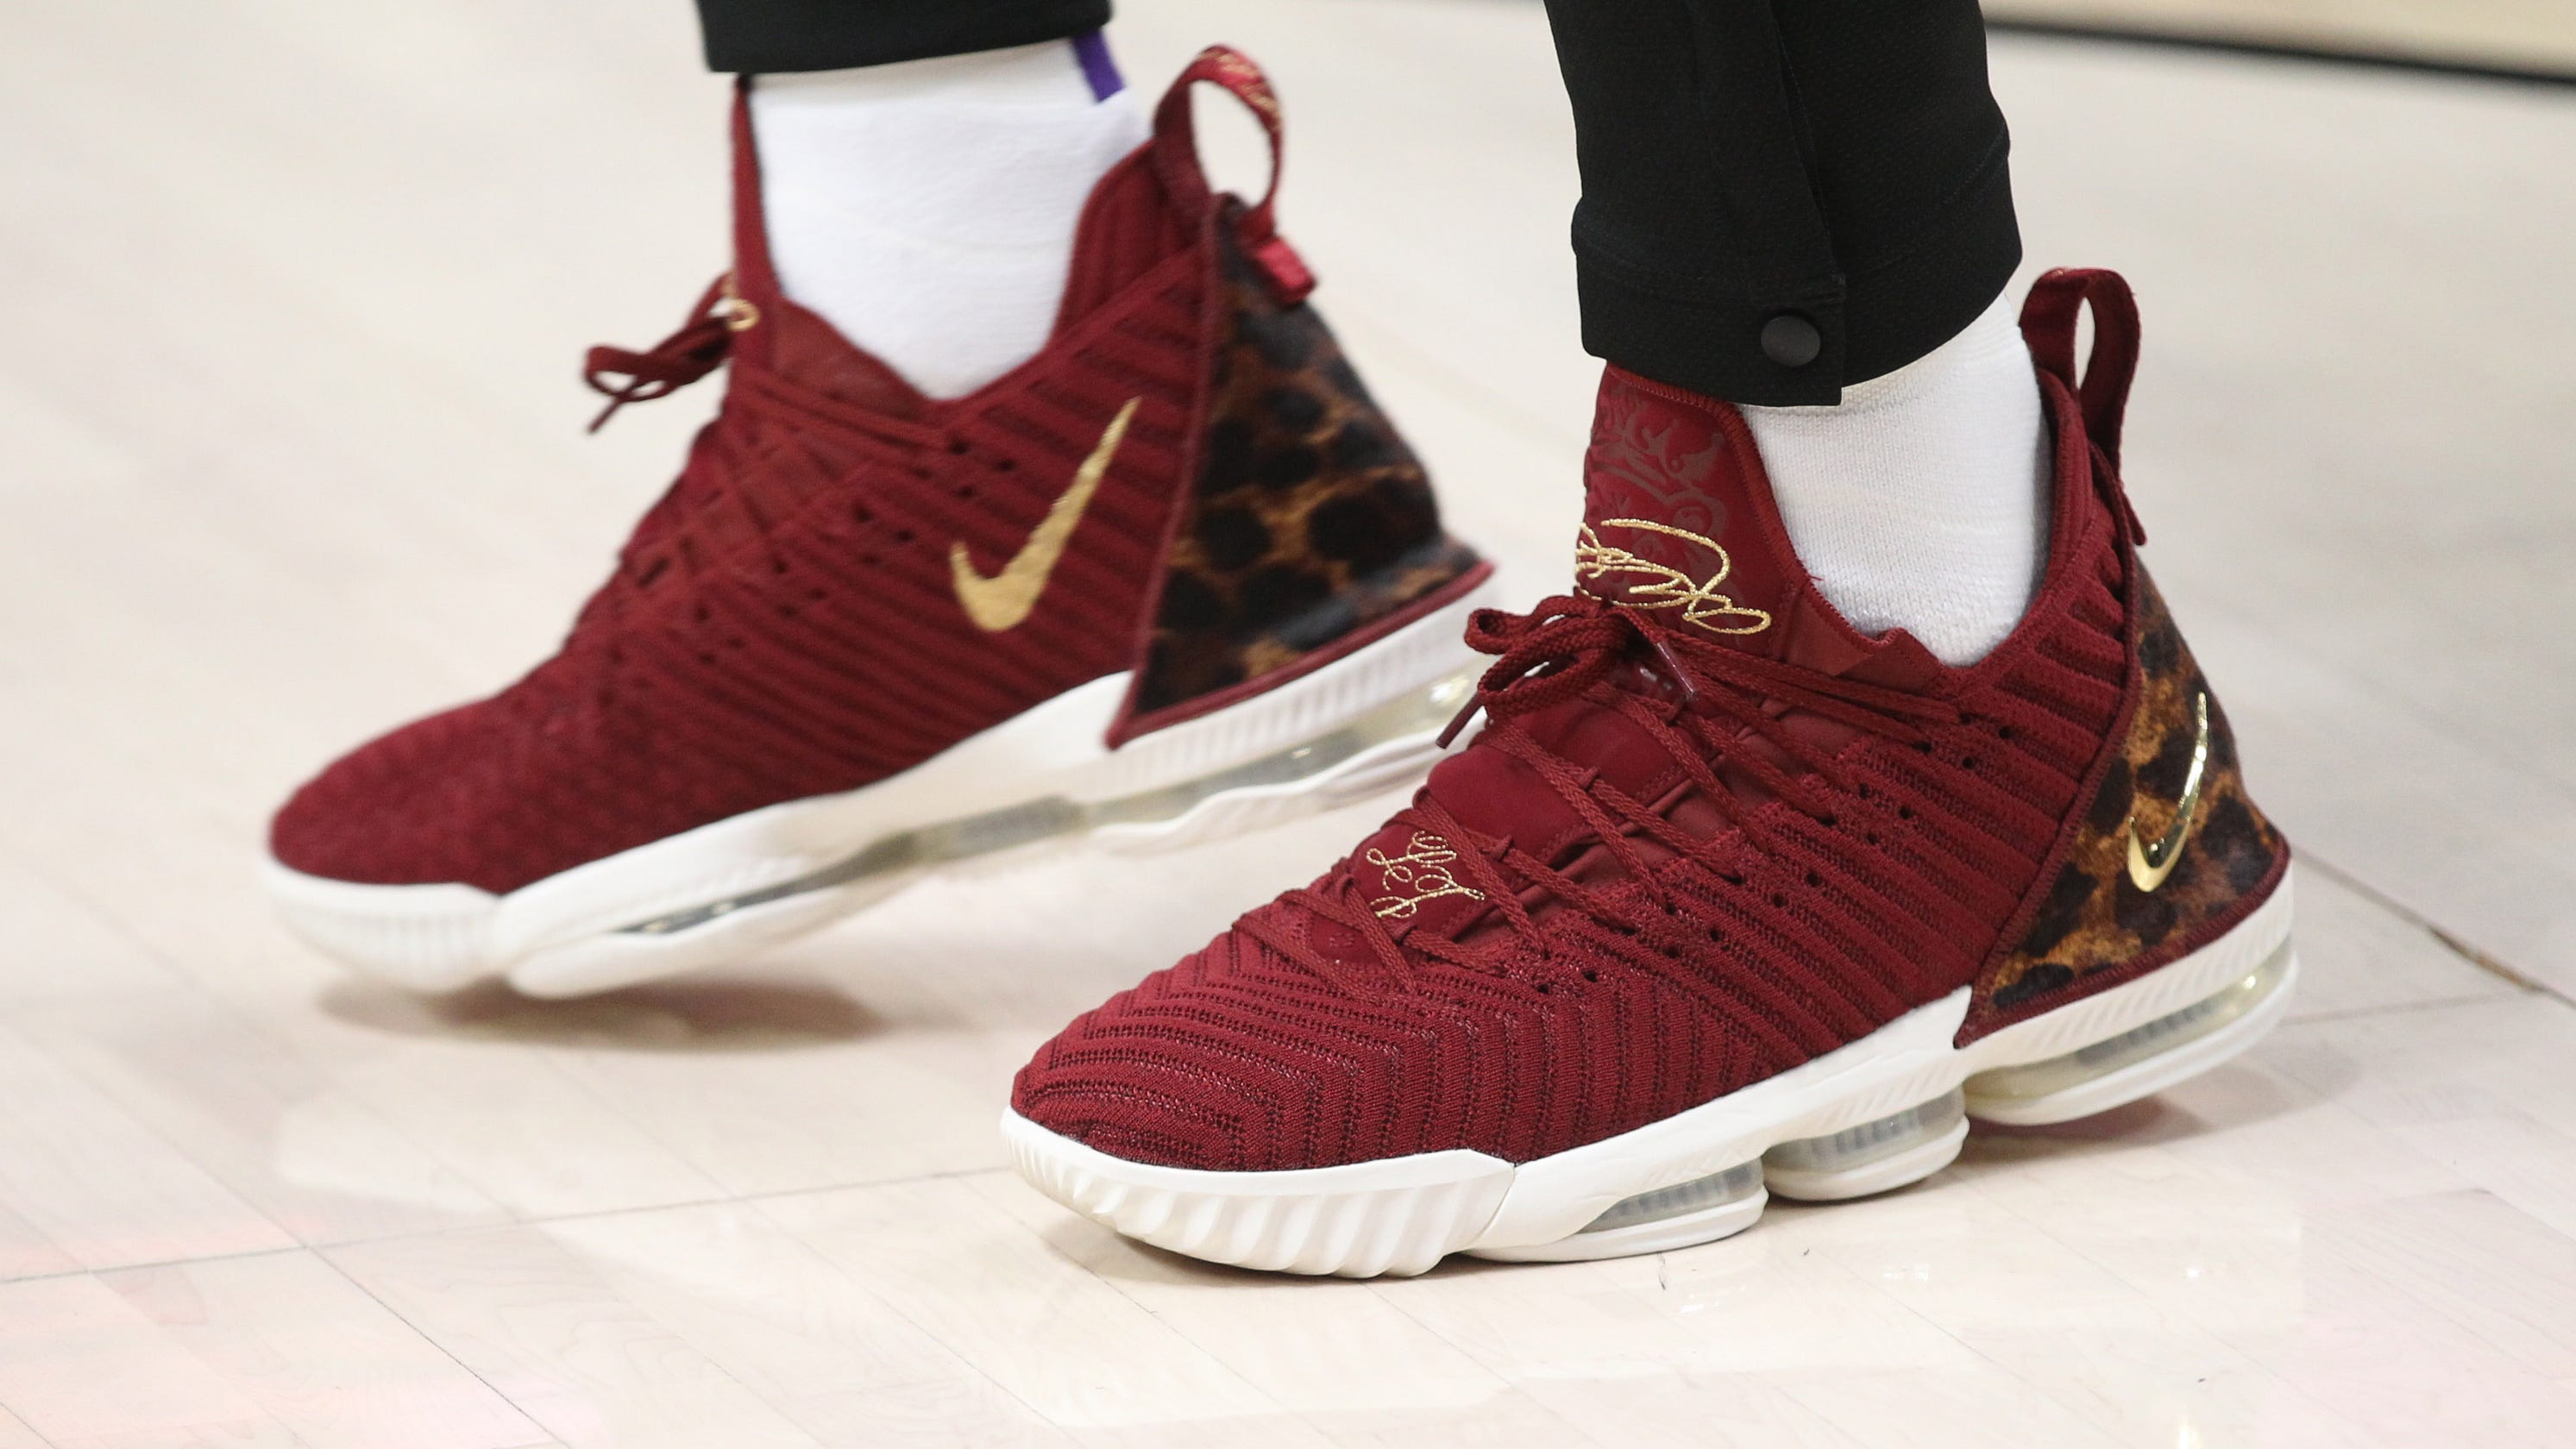 cdecc340a0470 LeBron James  Gold and burgundy shoes not nod to former team